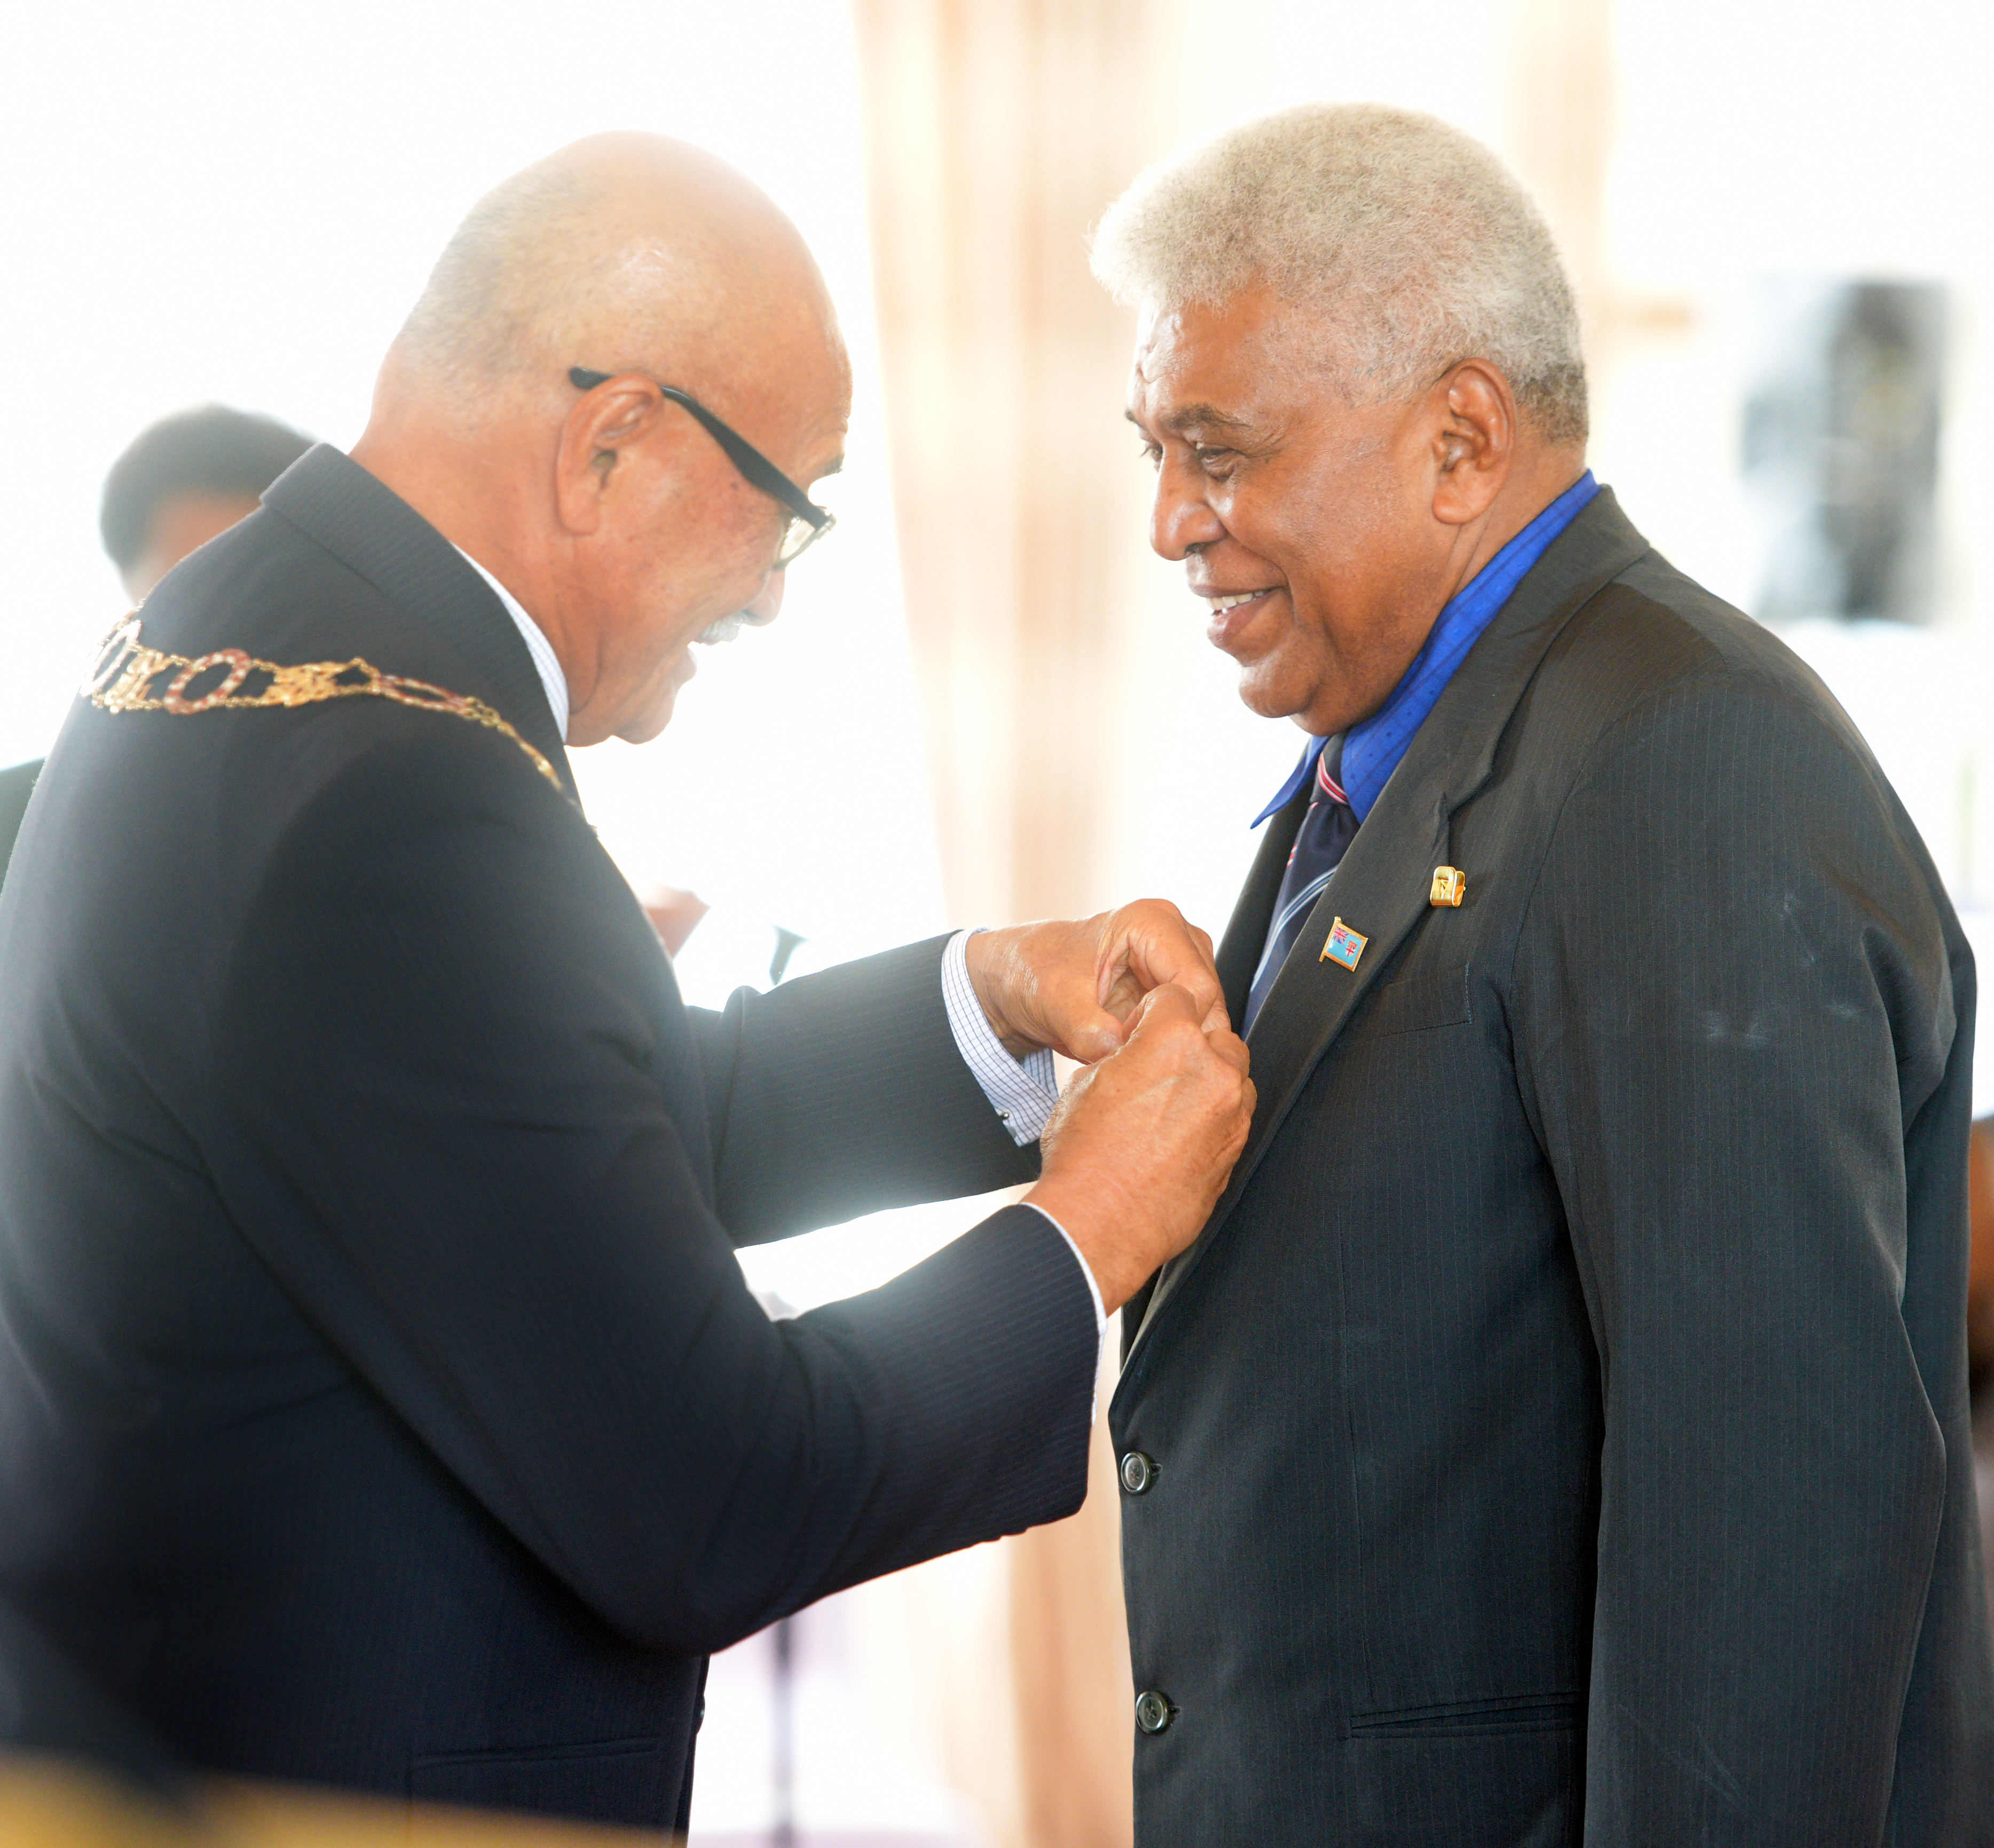 President Awards Romanu Tikotikoca with 50th anniversary of Independence commemorative medal during special investiture ceremony at State House on October 8, 2020. Photo: Ronald Kumar.